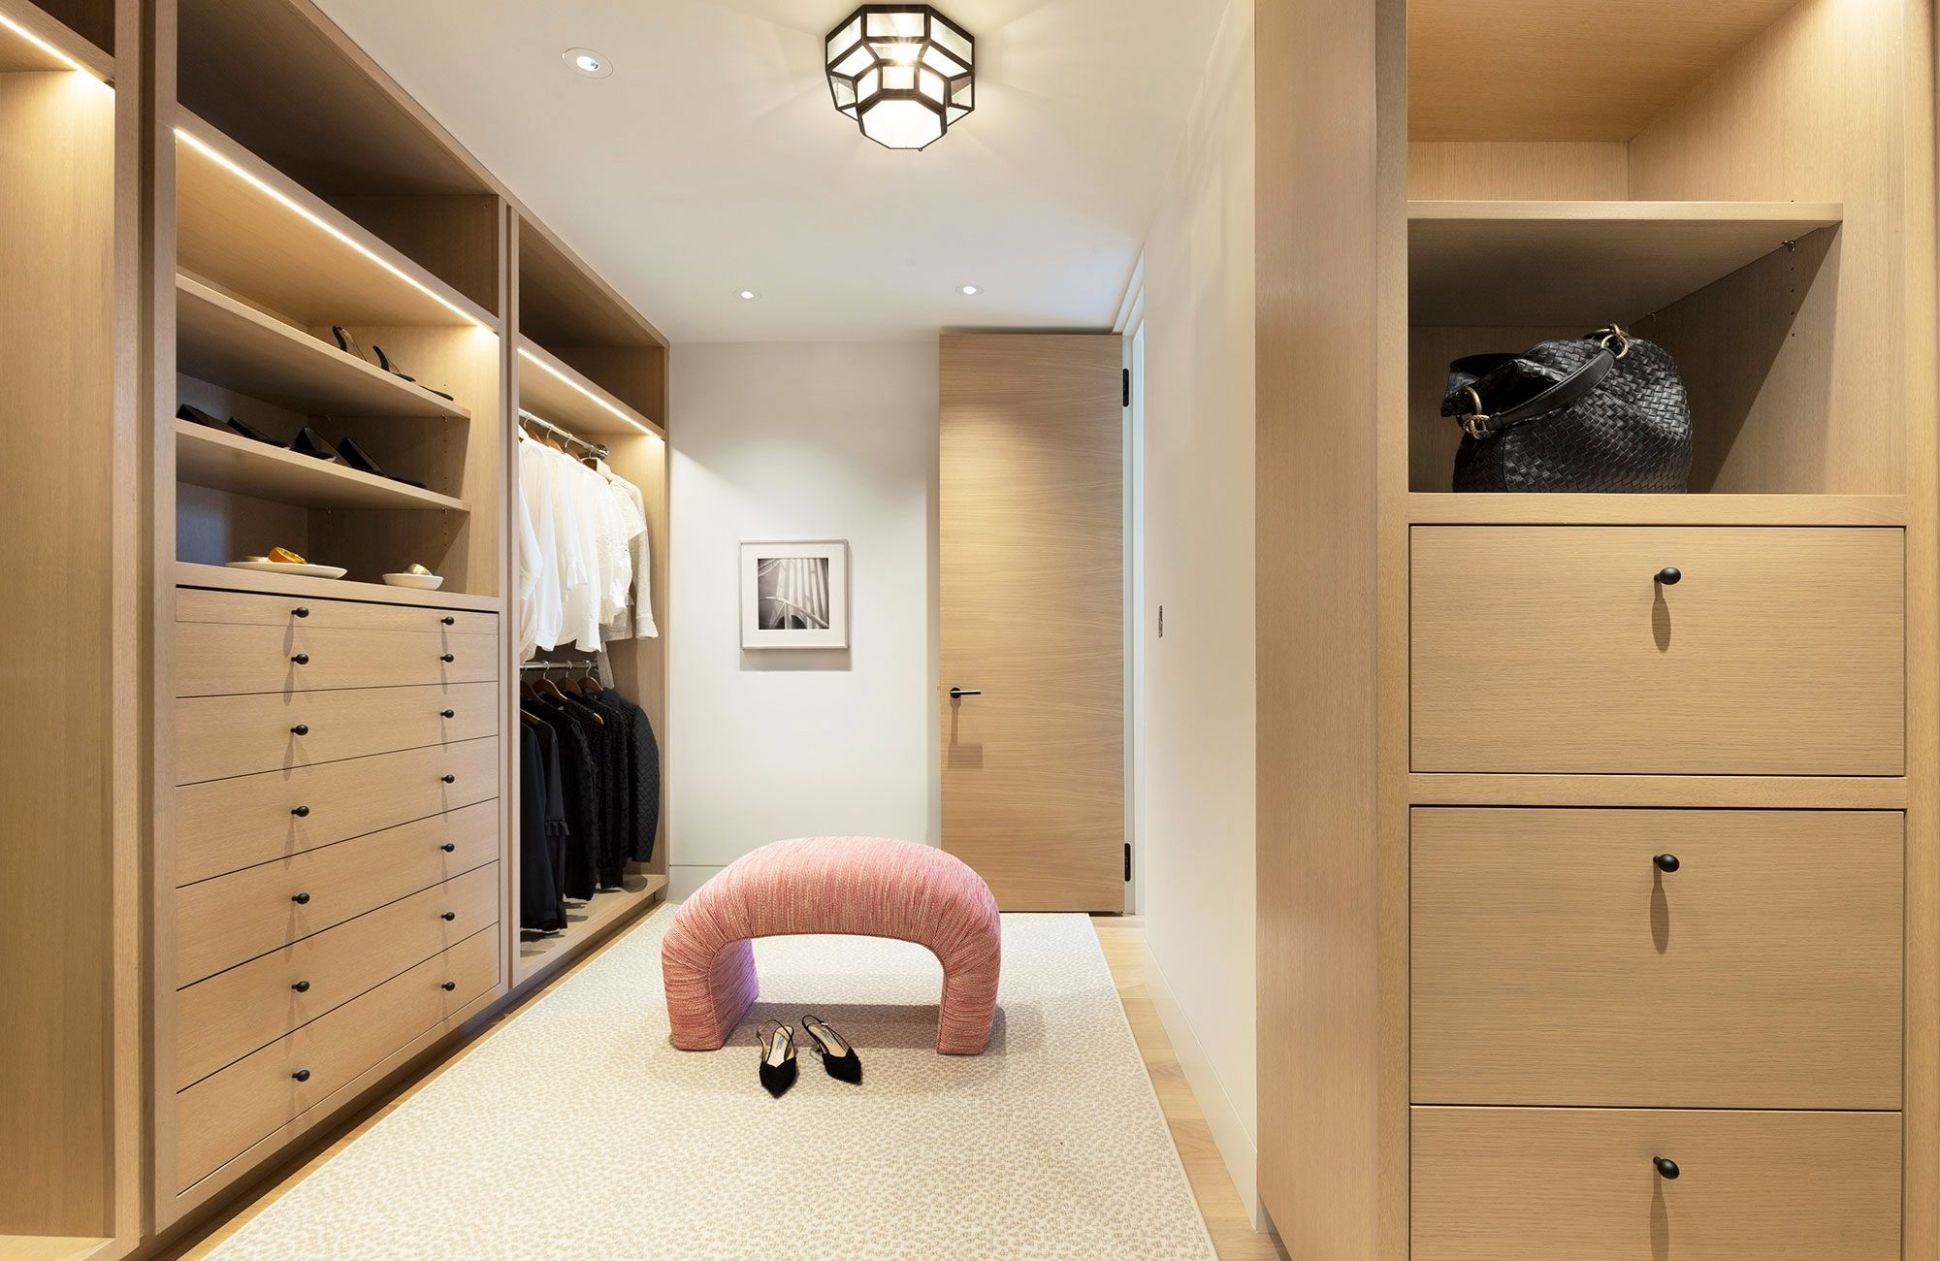 12 Best Walk In Closet Storage Ideas and Designs for Master Bedrooms - closet ideas large